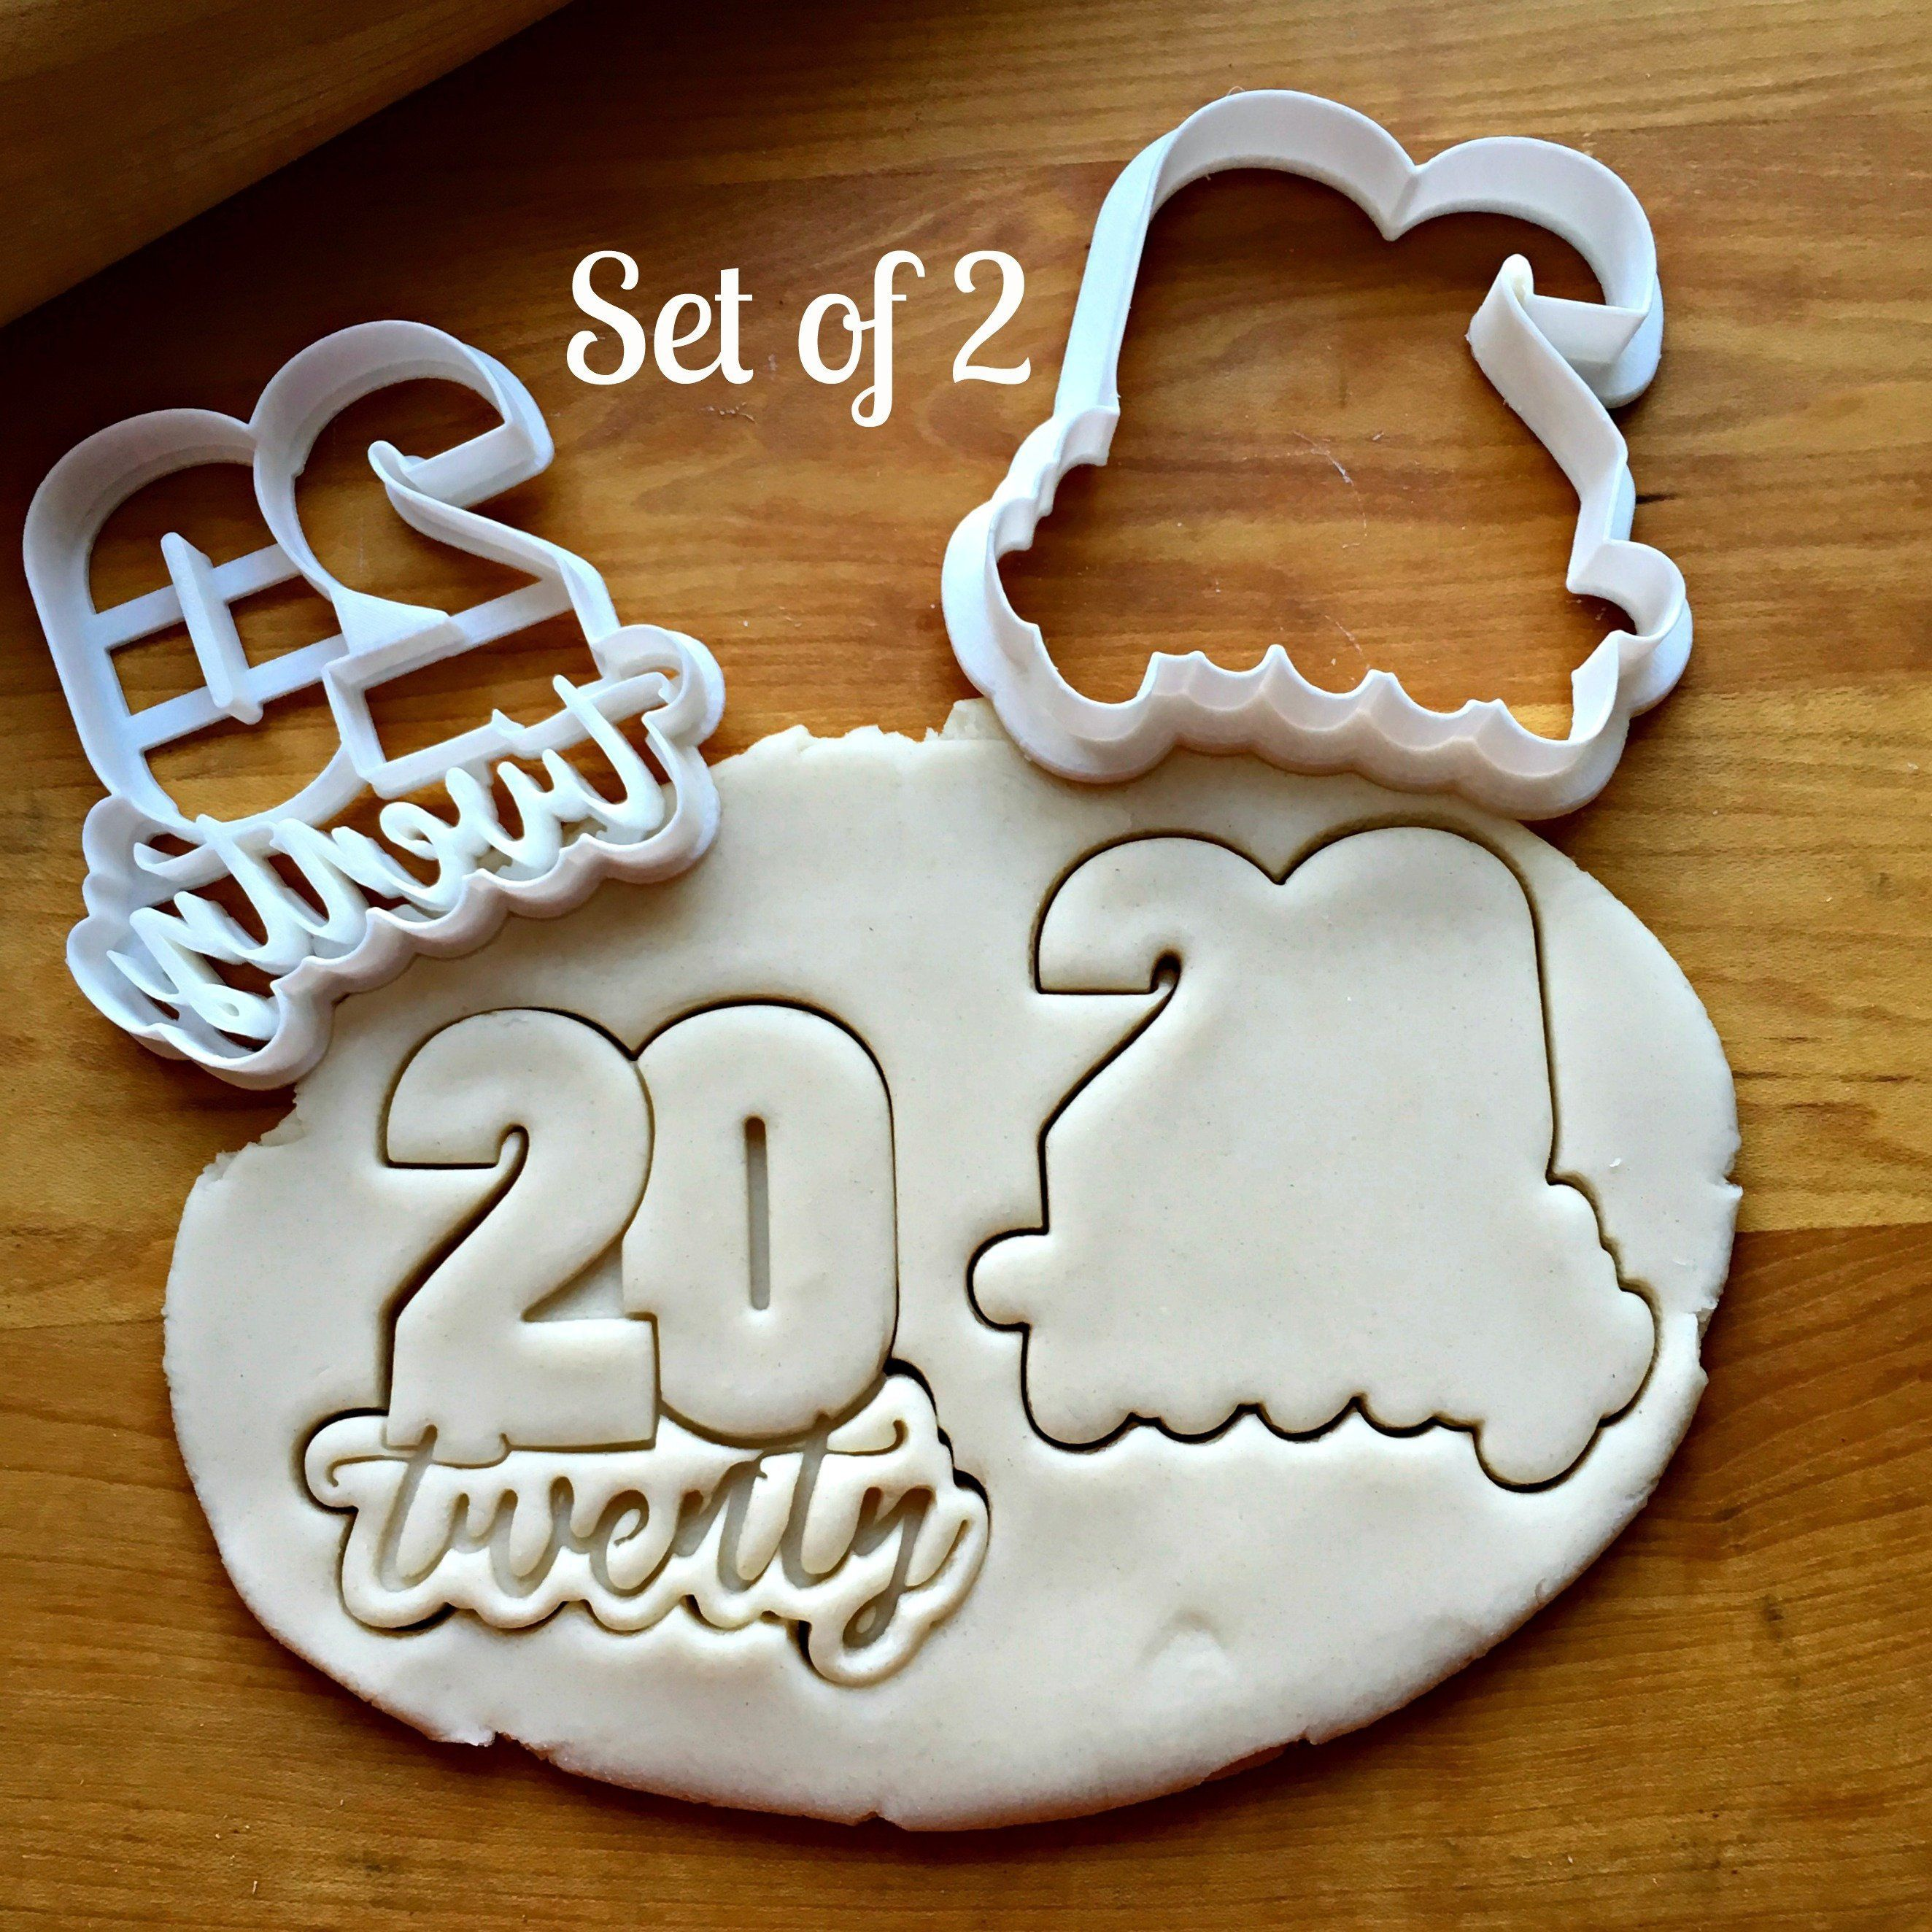 Set of 2 Thank You Cookie CuttersMulti-SizeDishwasher Safe Available